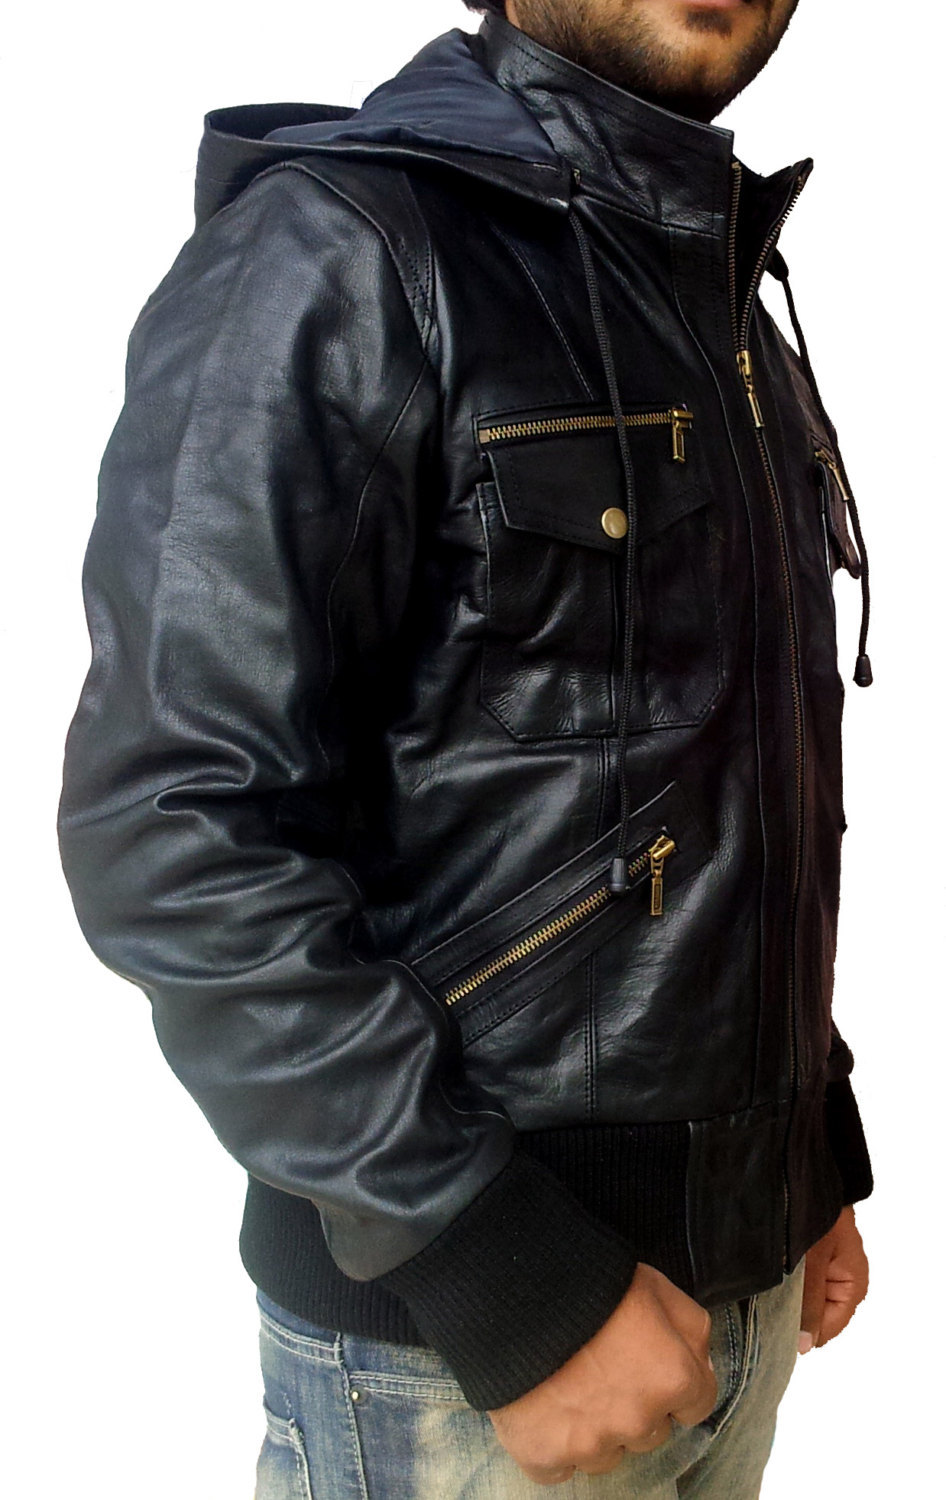 Custom made leather jackets for men